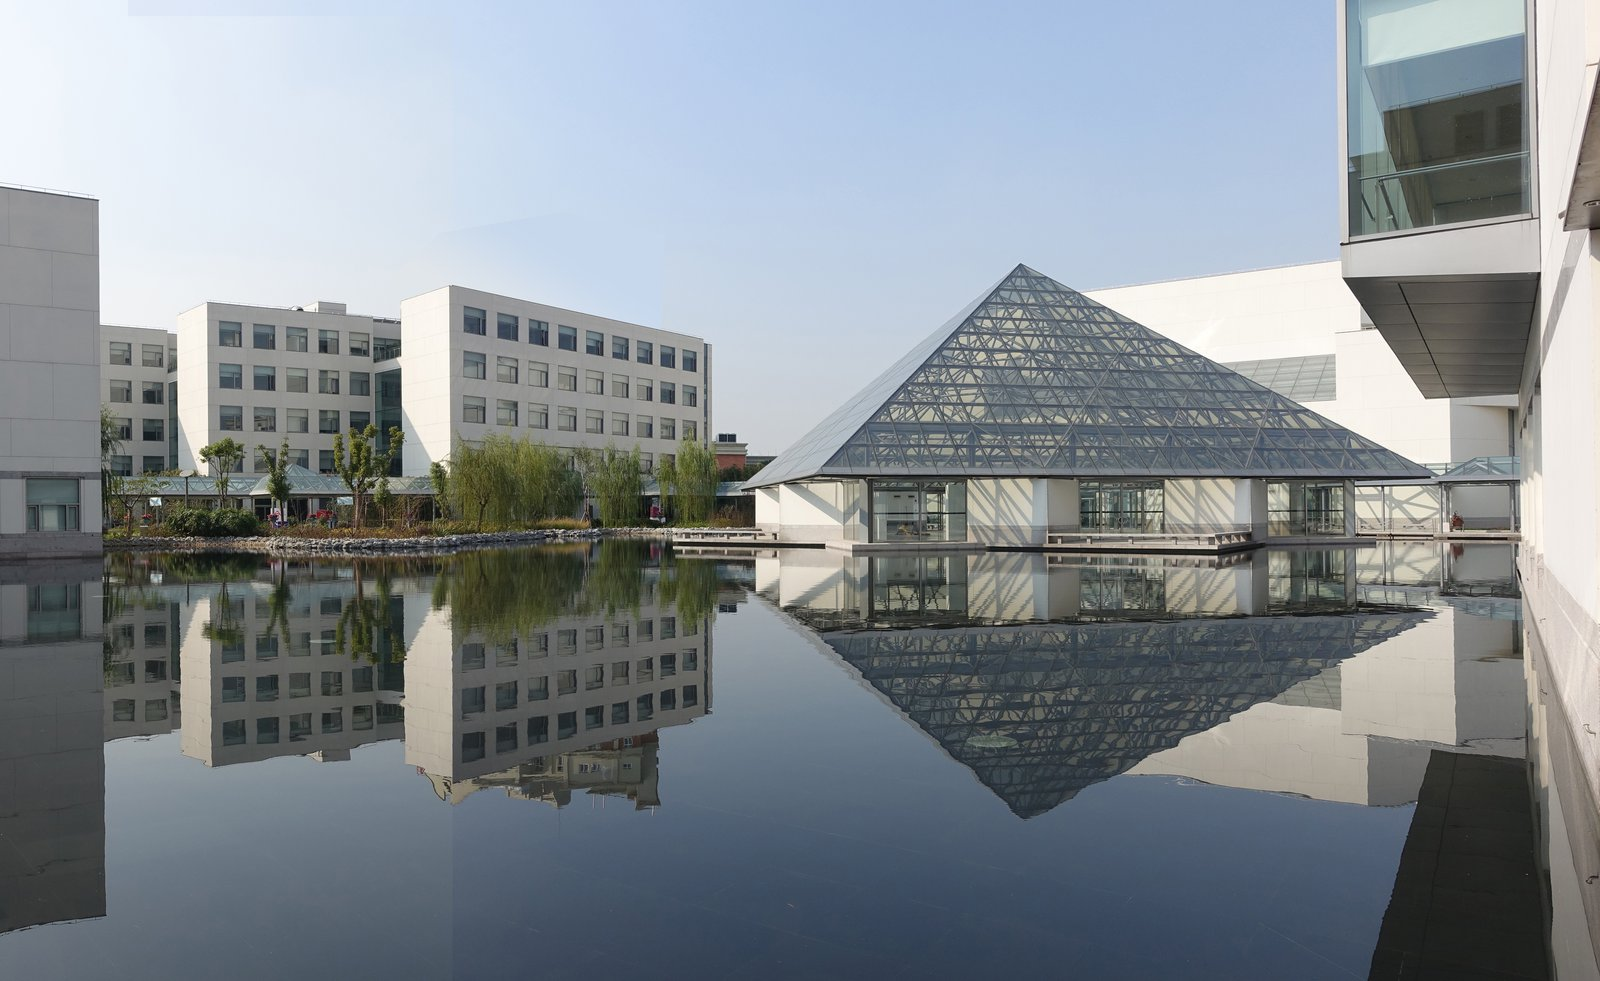 Ceibs Expansion Campus In Shanghai Opens Pei Cobb Freed